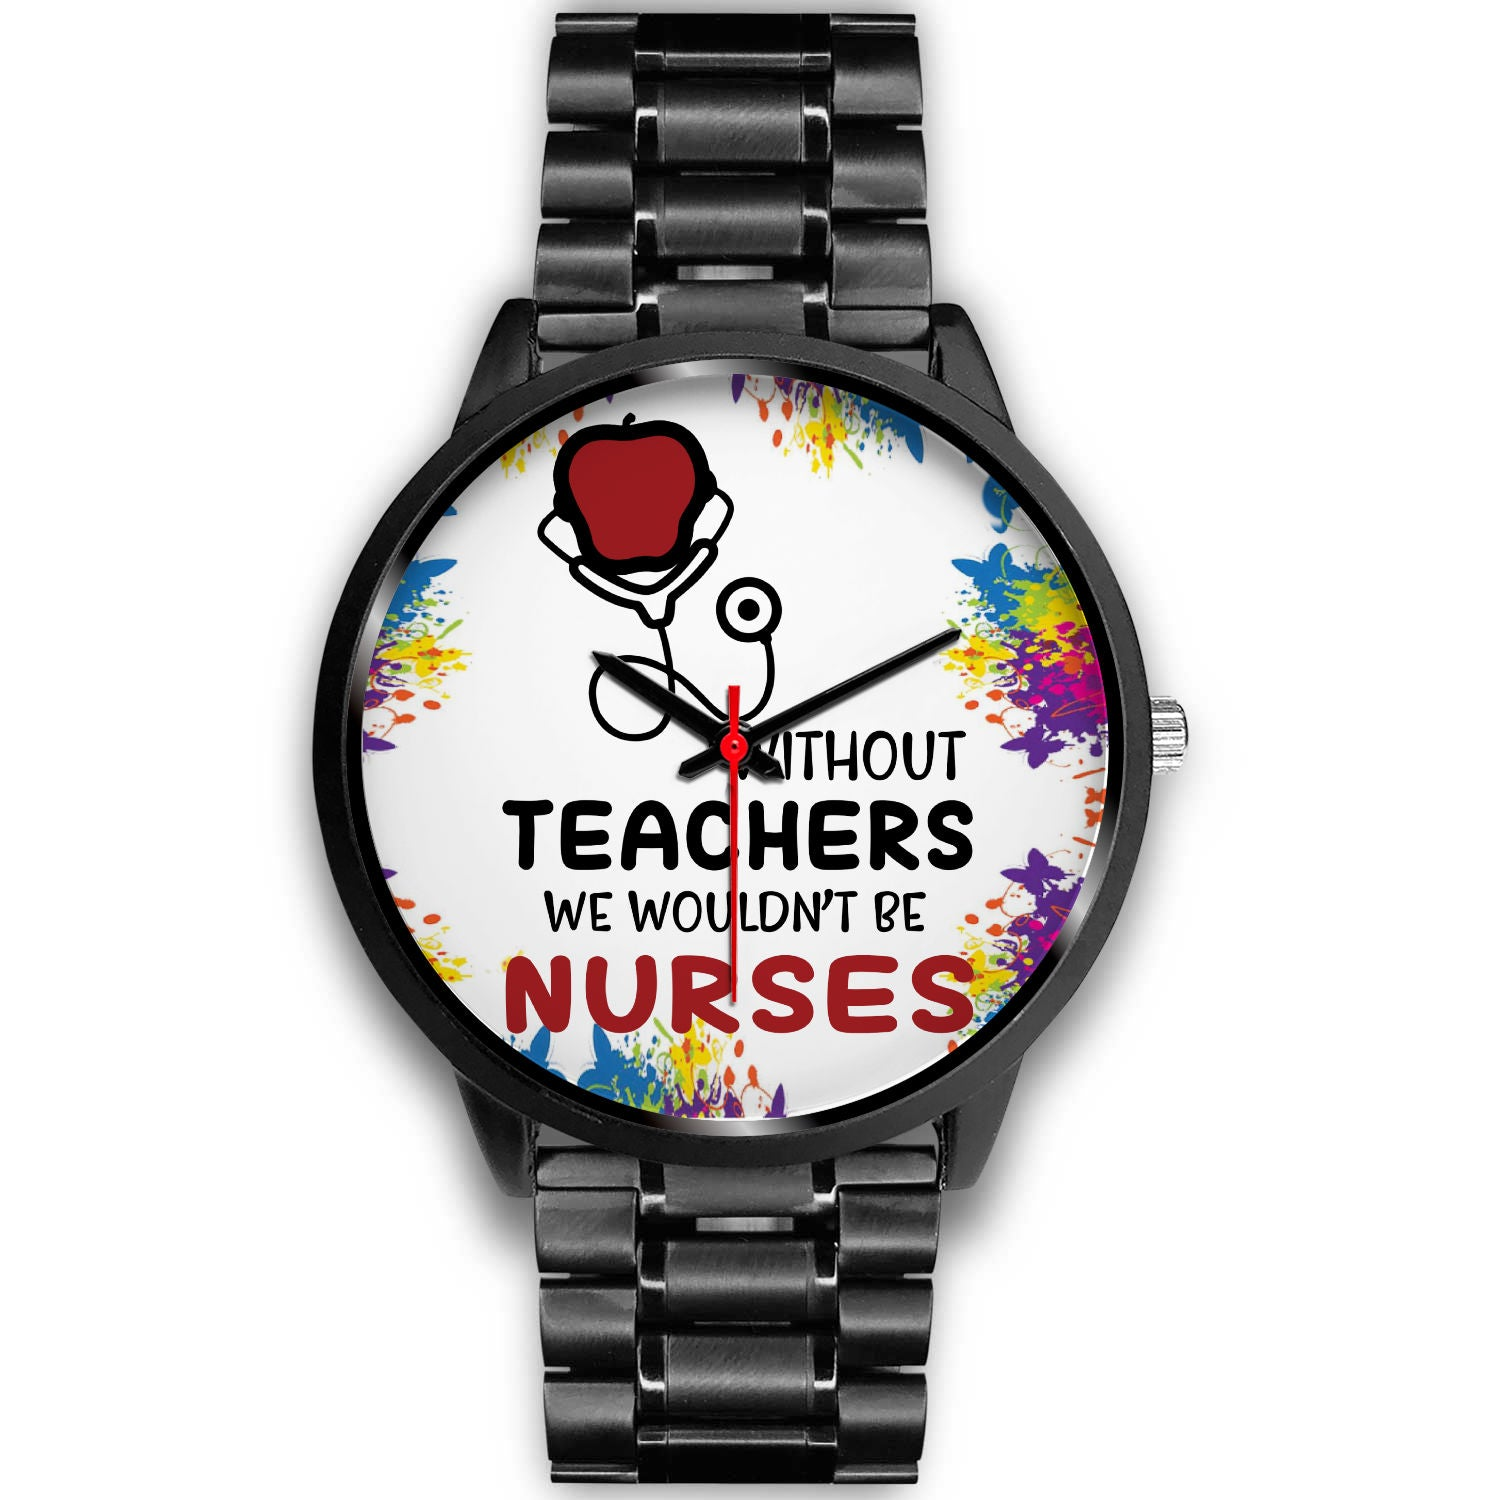 VIRA black stainless steel watch for awesome teachers & nurses